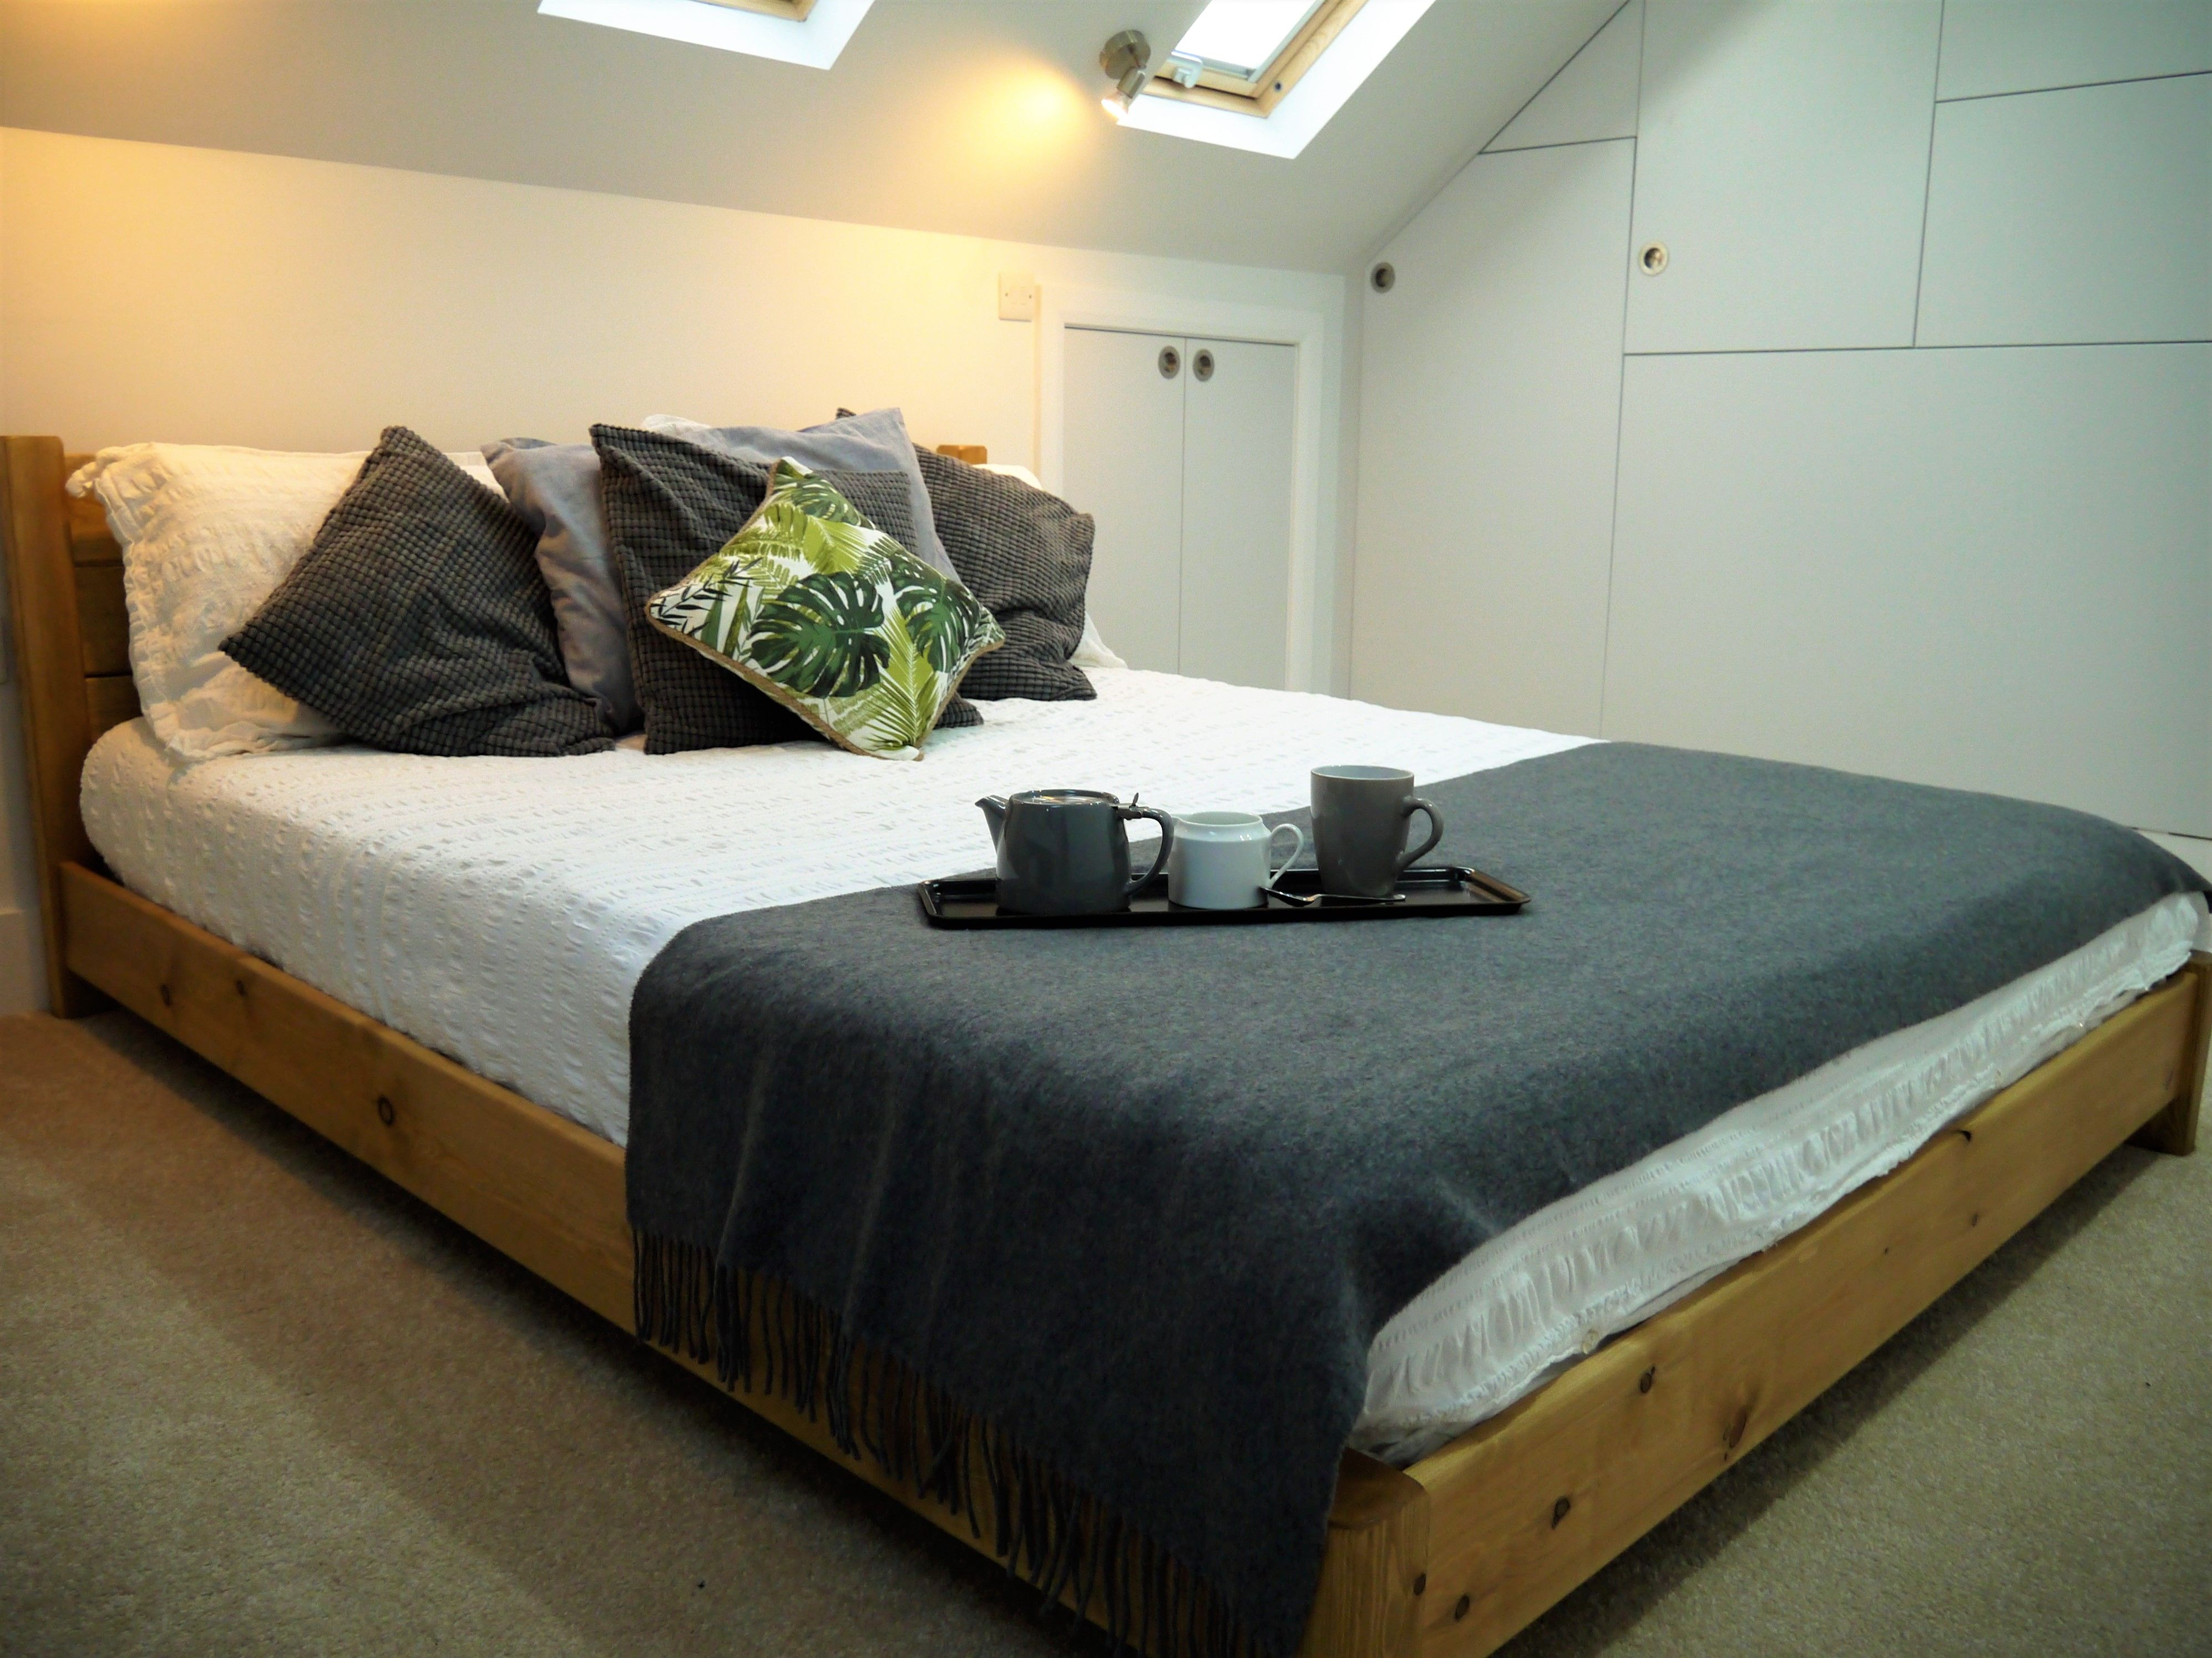 helen sent us this photo of her king size low tokyo bed in our popular honey - Low King Size Bed Frame